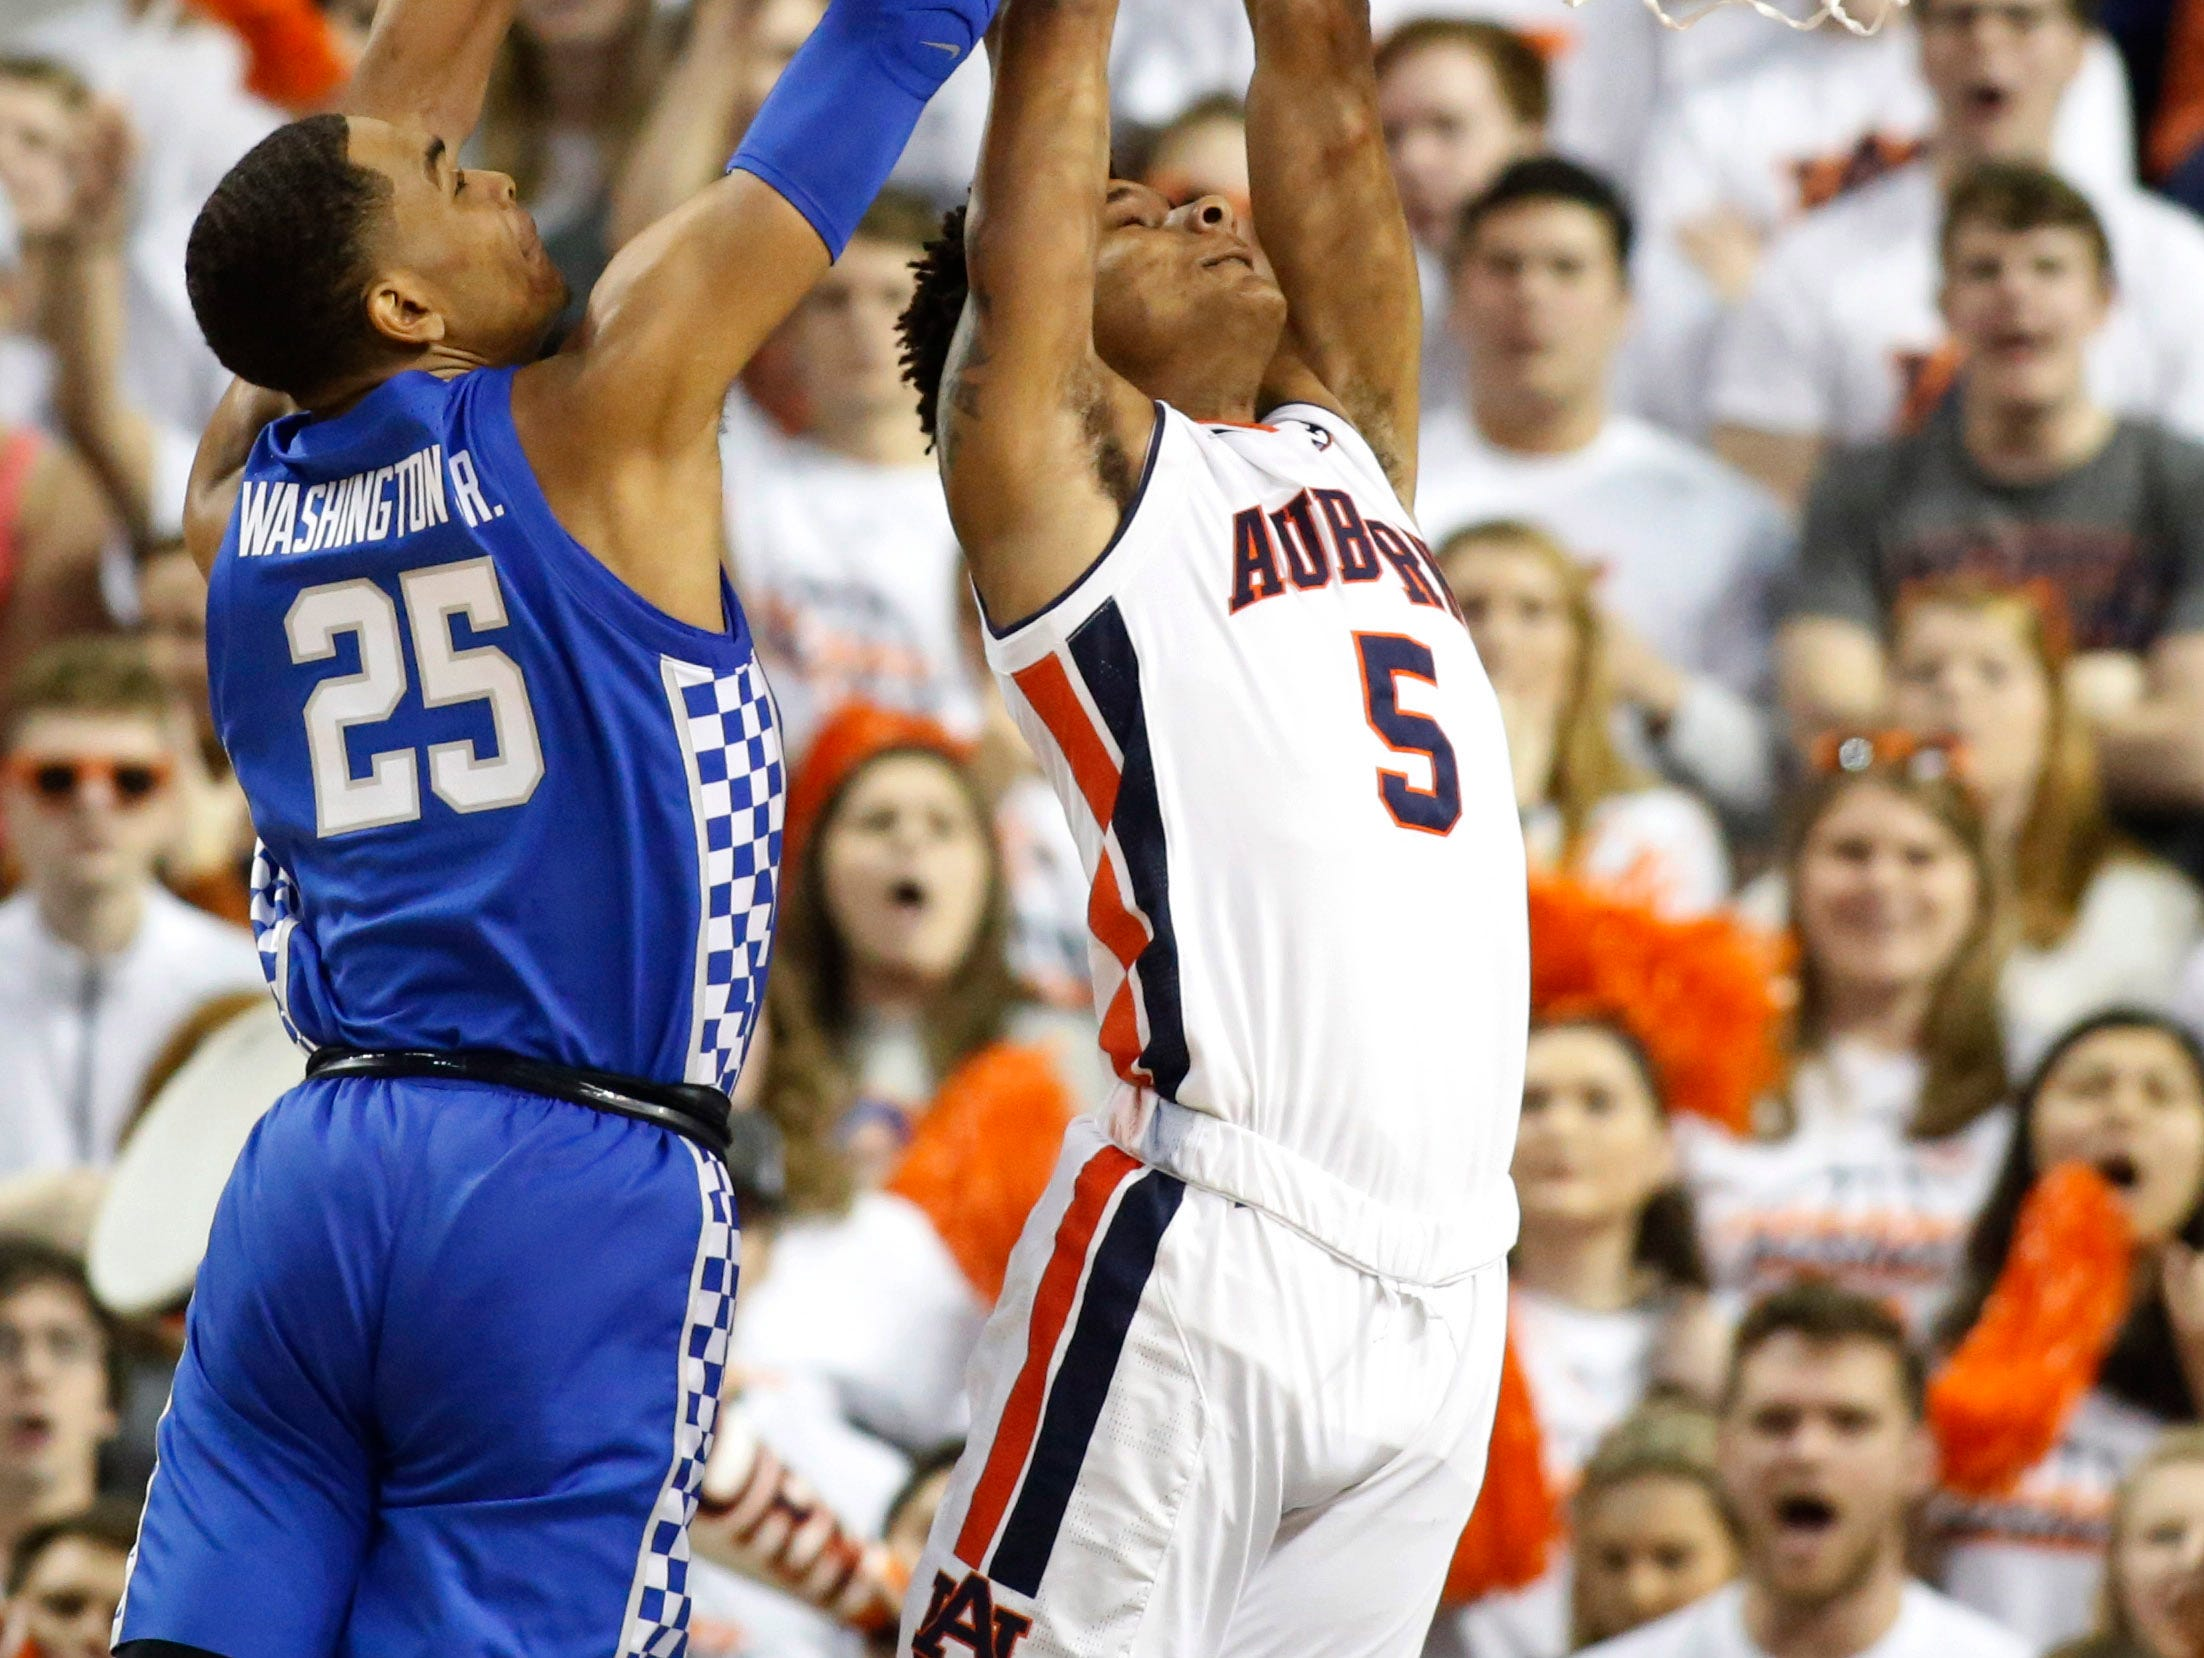 Jan 19, 2019; Auburn, AL, USA; Auburn Tigers forward Chuma Okeke has his shot blocked by Kentucky Wildcats forward PJ Washington (25) during the first half at Auburn Arena. Mandatory Credit: John Reed-USA TODAY Sports